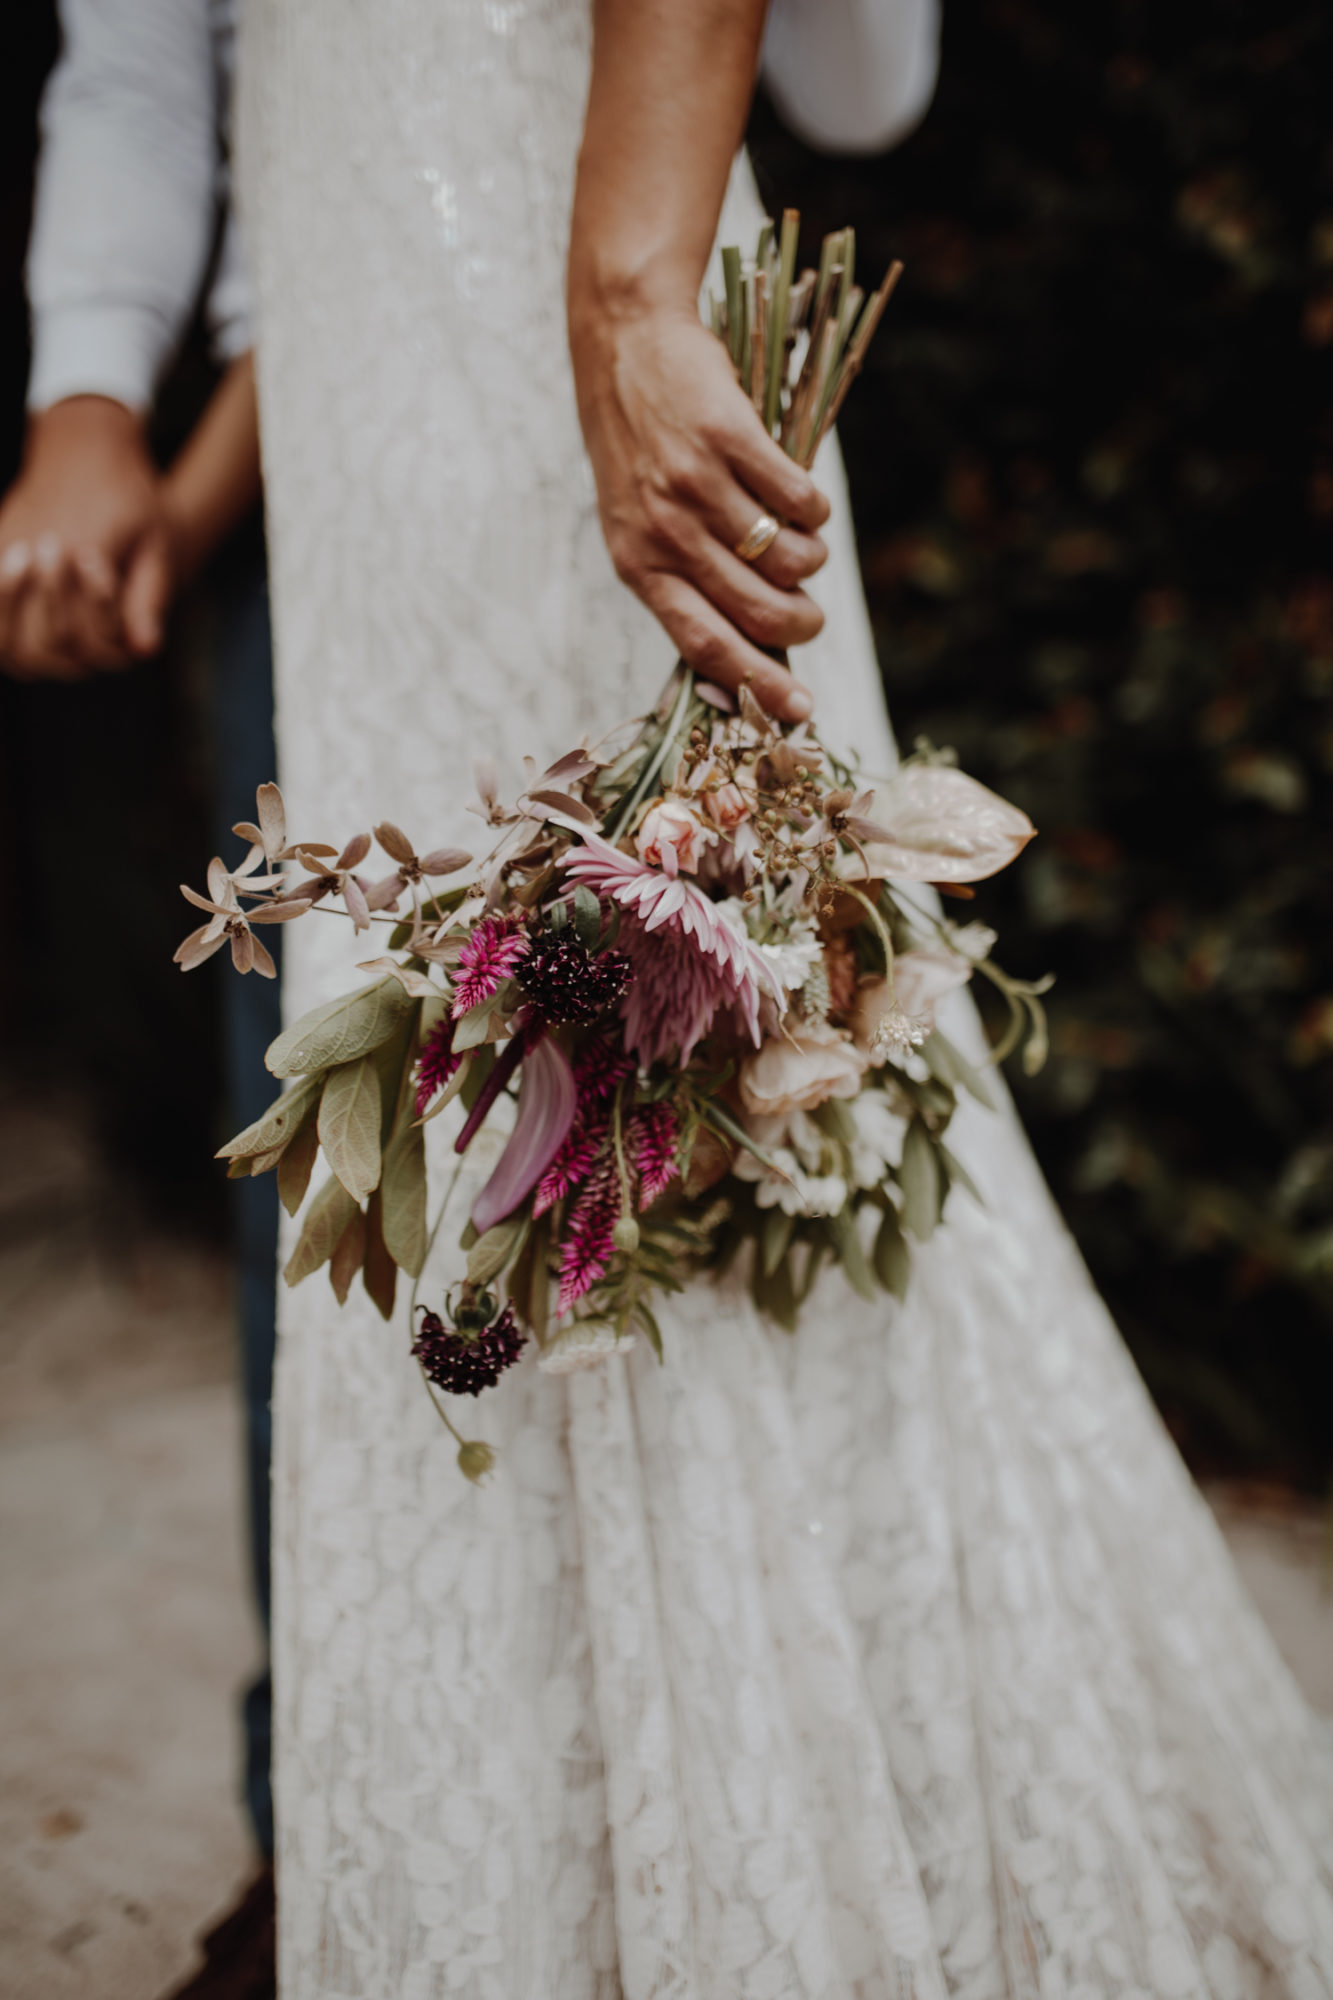 The bride holding the bouquet